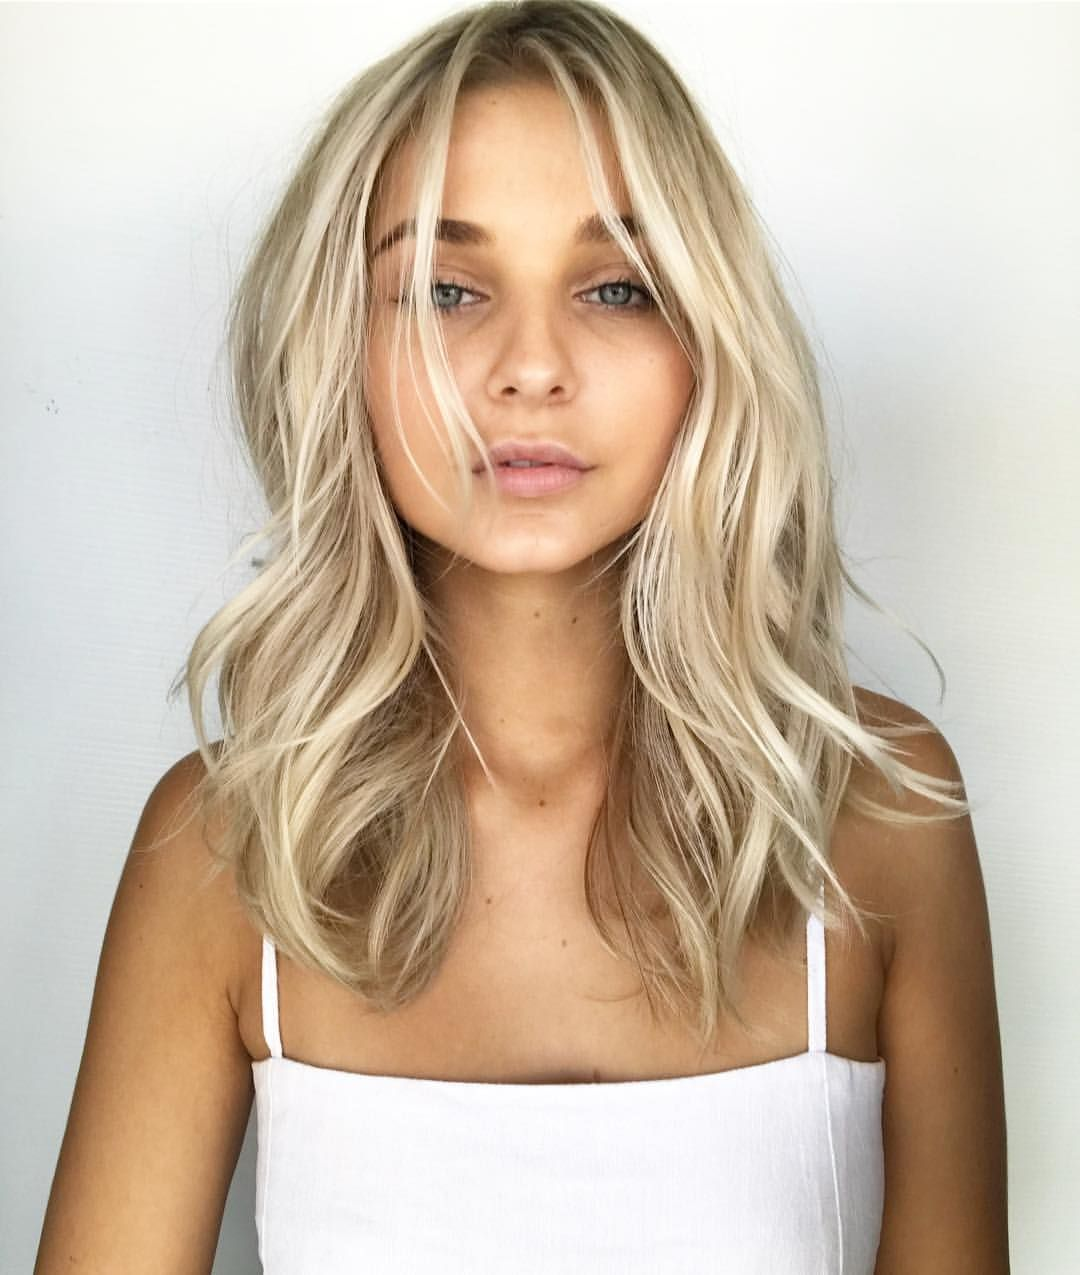 """CHELSEAHAIRCUTTERS on Instagram: """"Powder blonde #CHELSEAHAIRCUTTERS @pjthomsen USING @lorealpro #BLONDE #smartbond #behindthechair #maneaddicts #hair #blondehair #balayage…"""""""